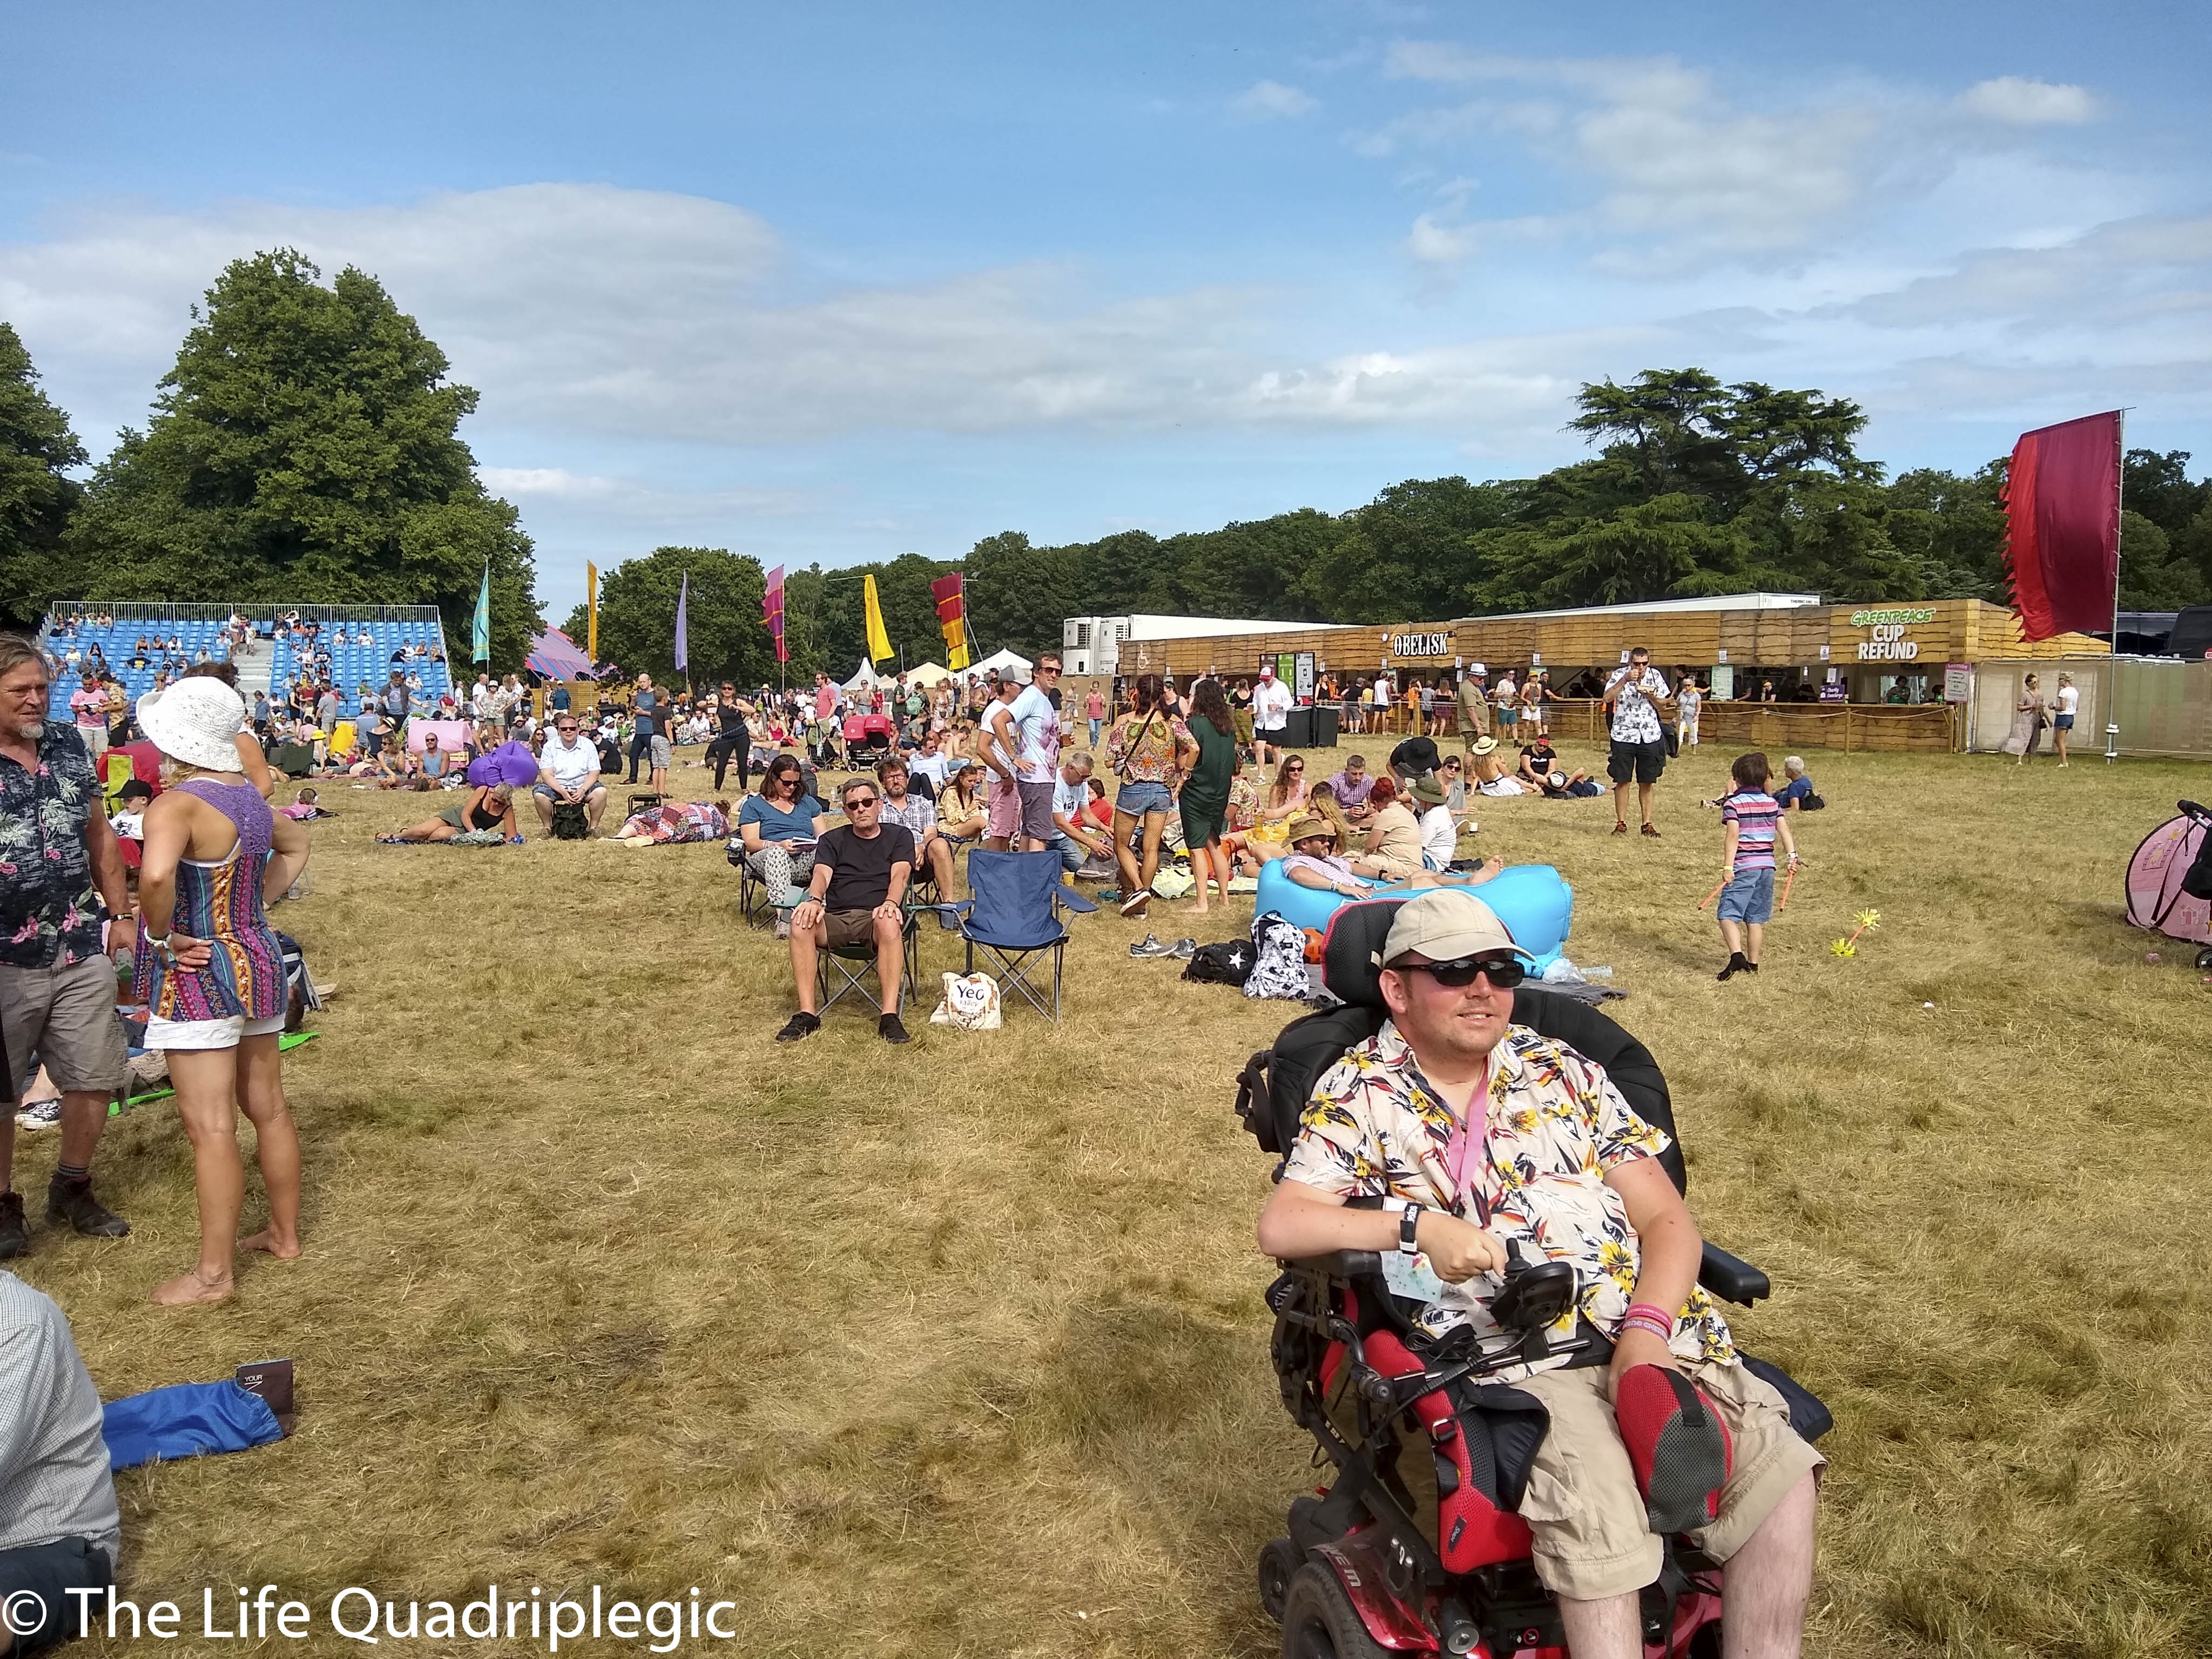 A young man in a powerchair Smiles at the camera while sat in a grassy field. Lots of other people are milling about.